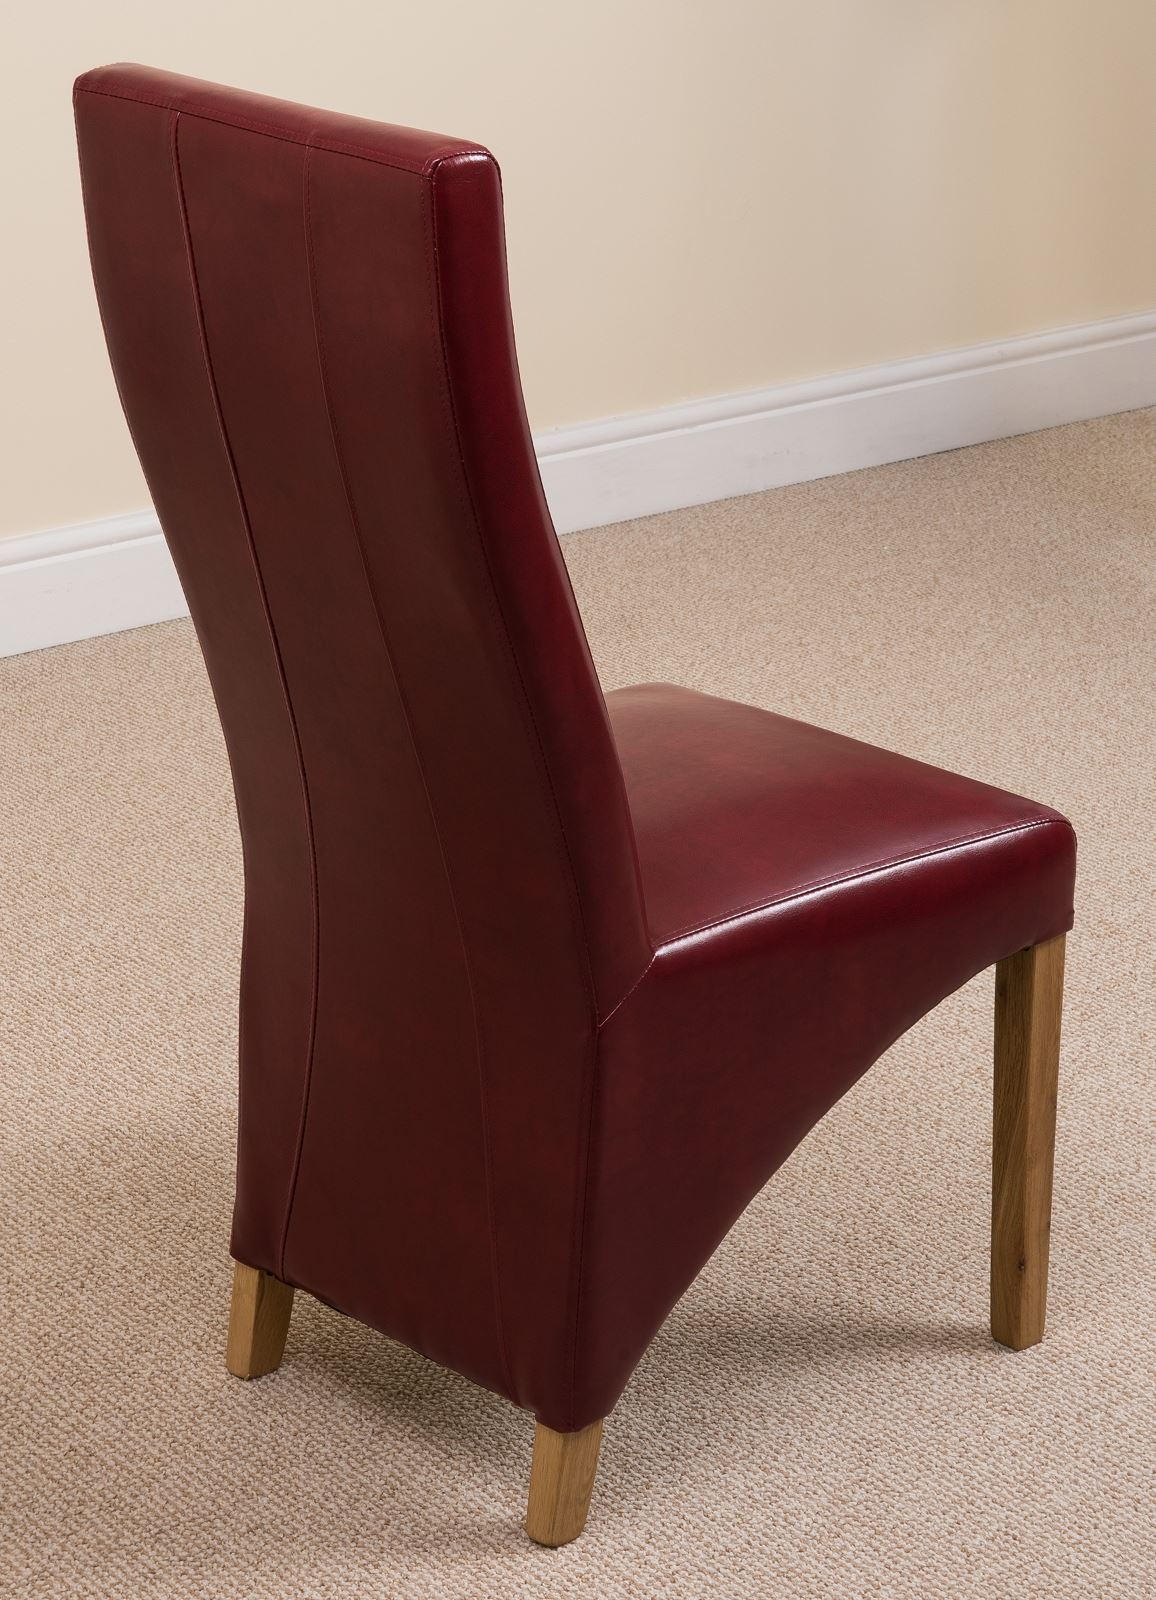 Lola Curved Back Red Leather Dining Room Kitchen Chairs